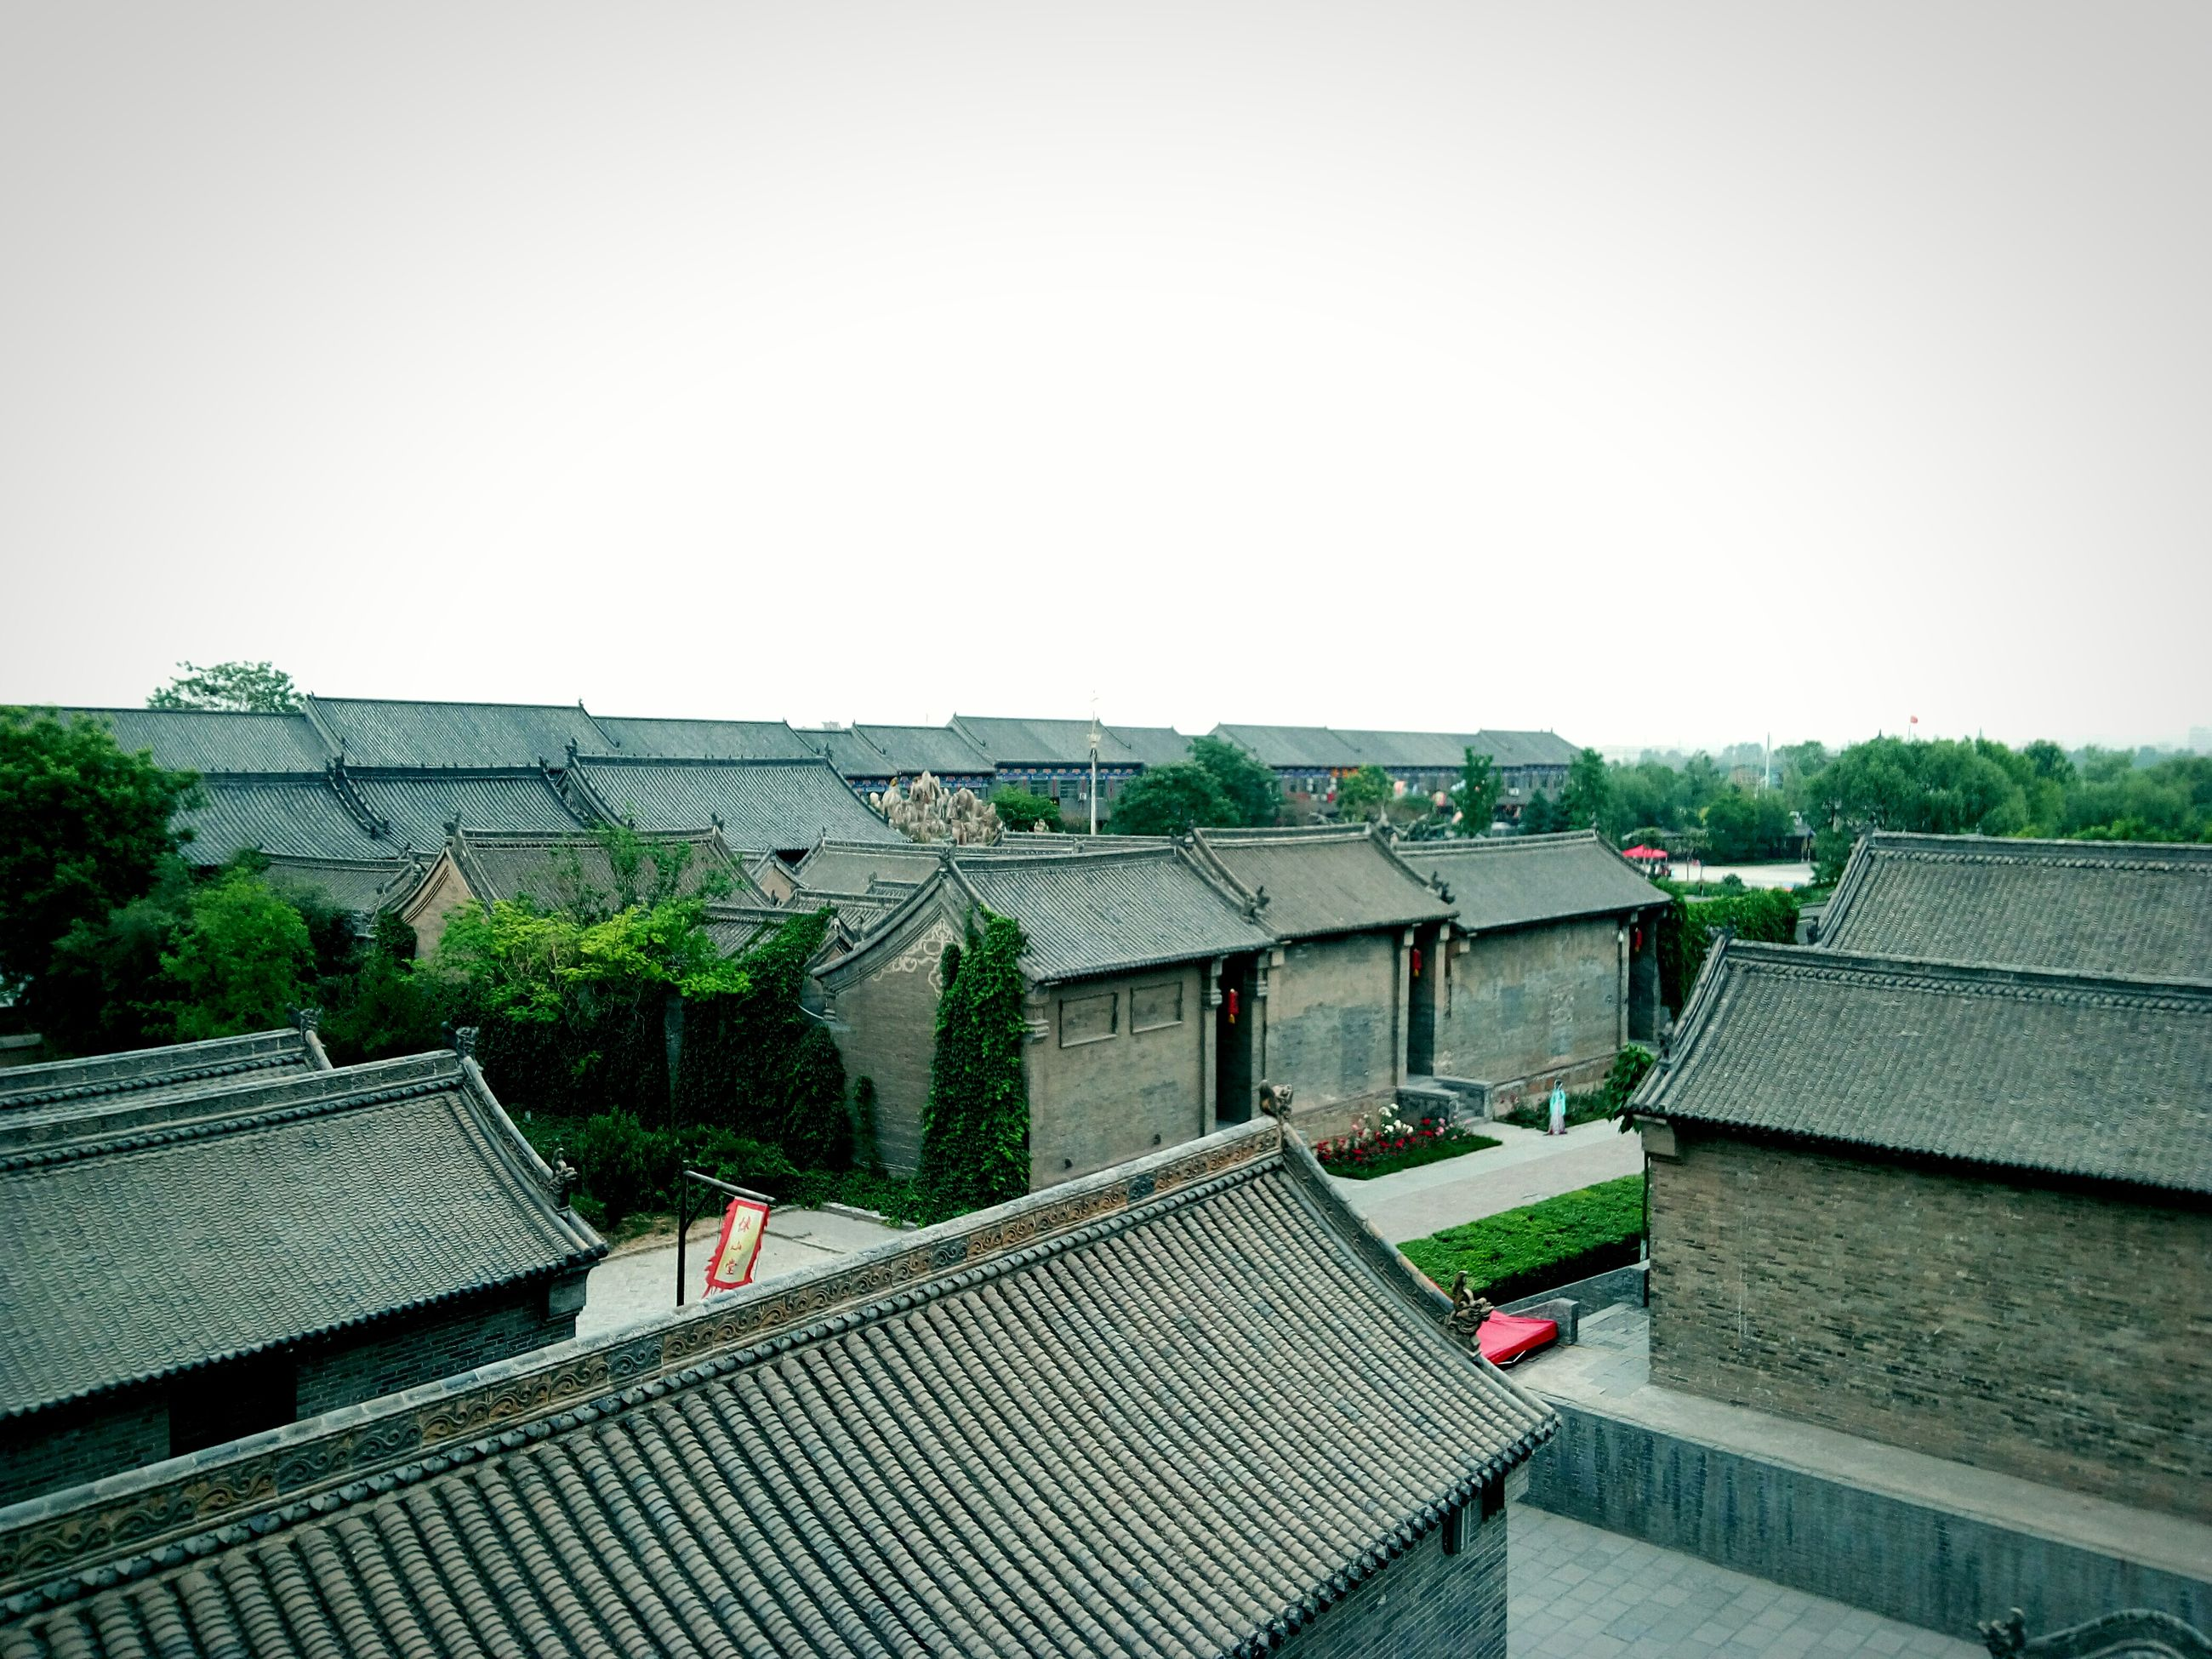 building exterior, architecture, built structure, clear sky, copy space, roof, house, high angle view, residential structure, residential building, day, outdoors, residential district, tree, city, sky, town, roof tile, no people, rooftop